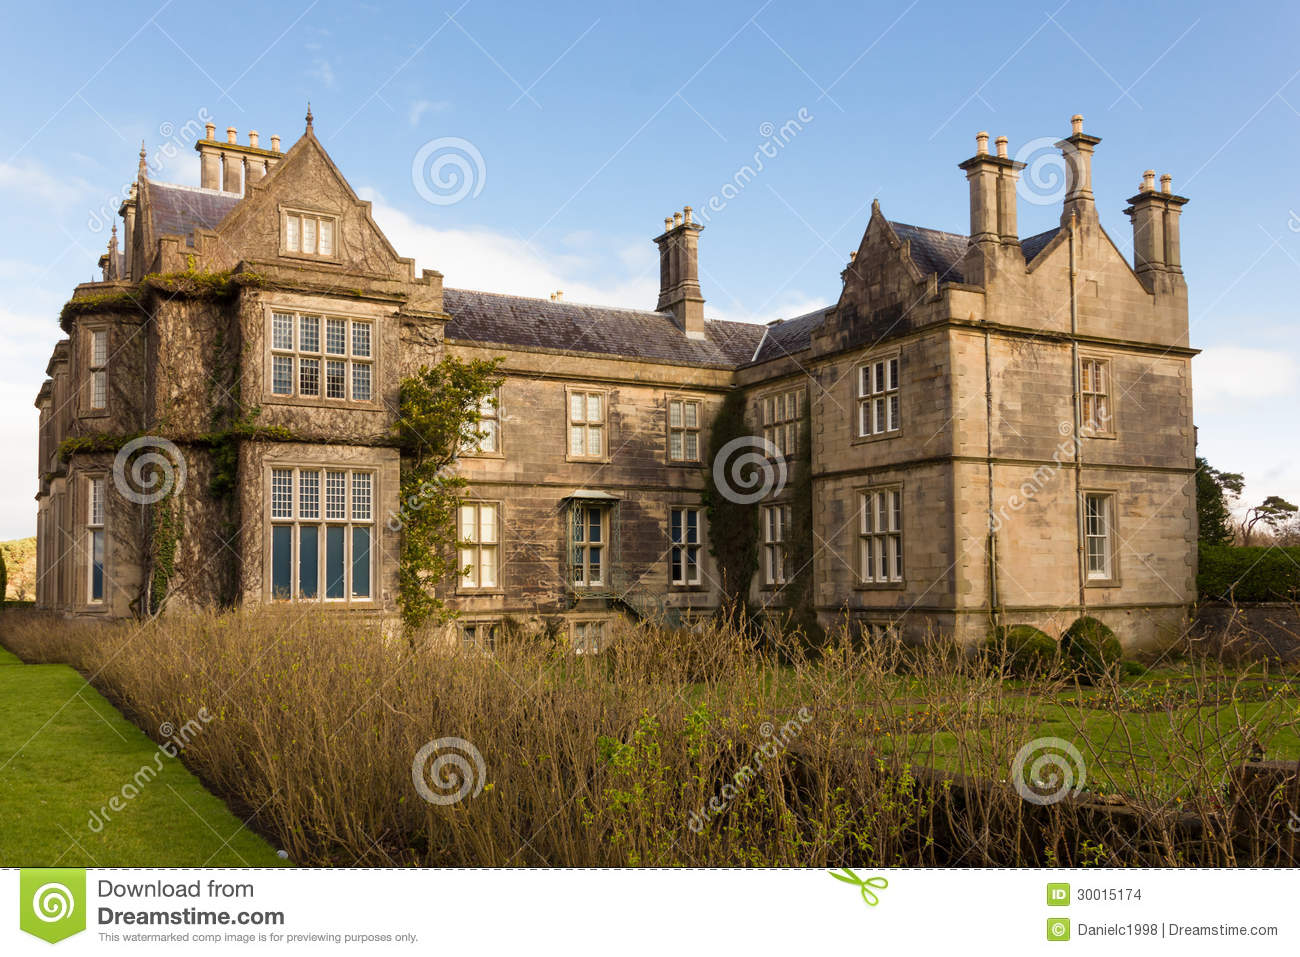 Muckross House And Gardens. Killarney. Ireland Stock Photo